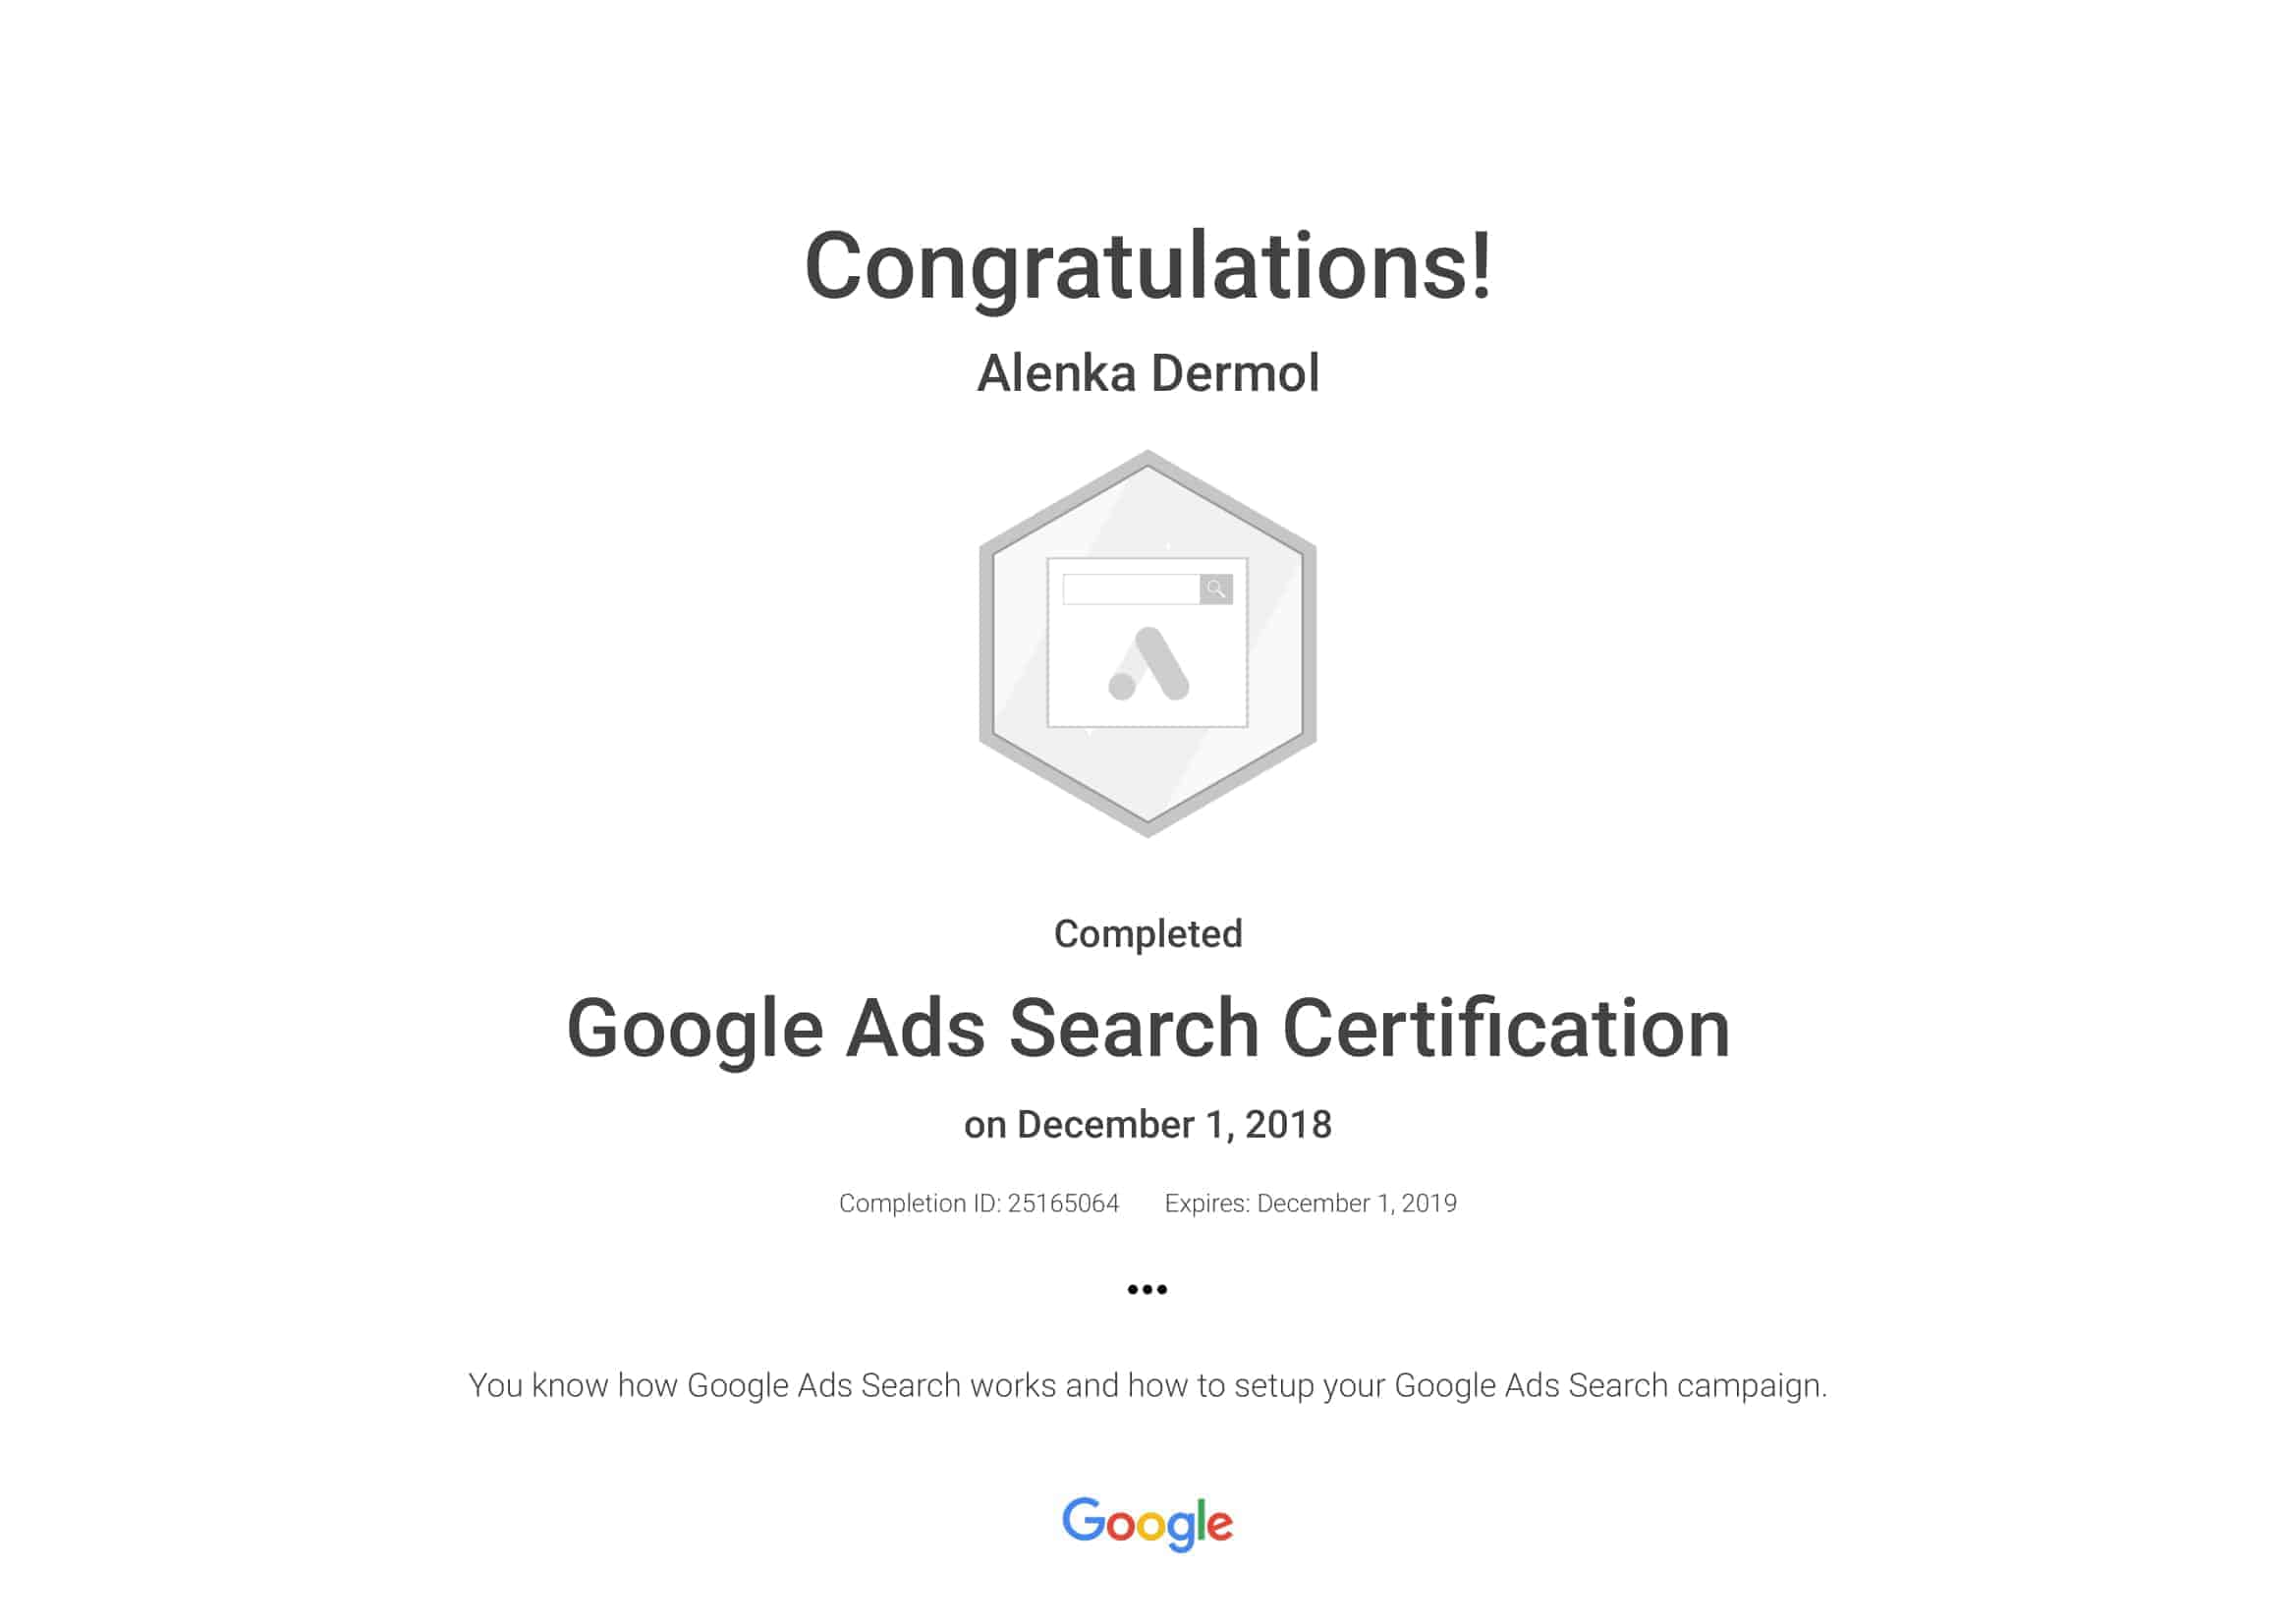 Google-Ads-Search-Certification-Alenka-Dermol